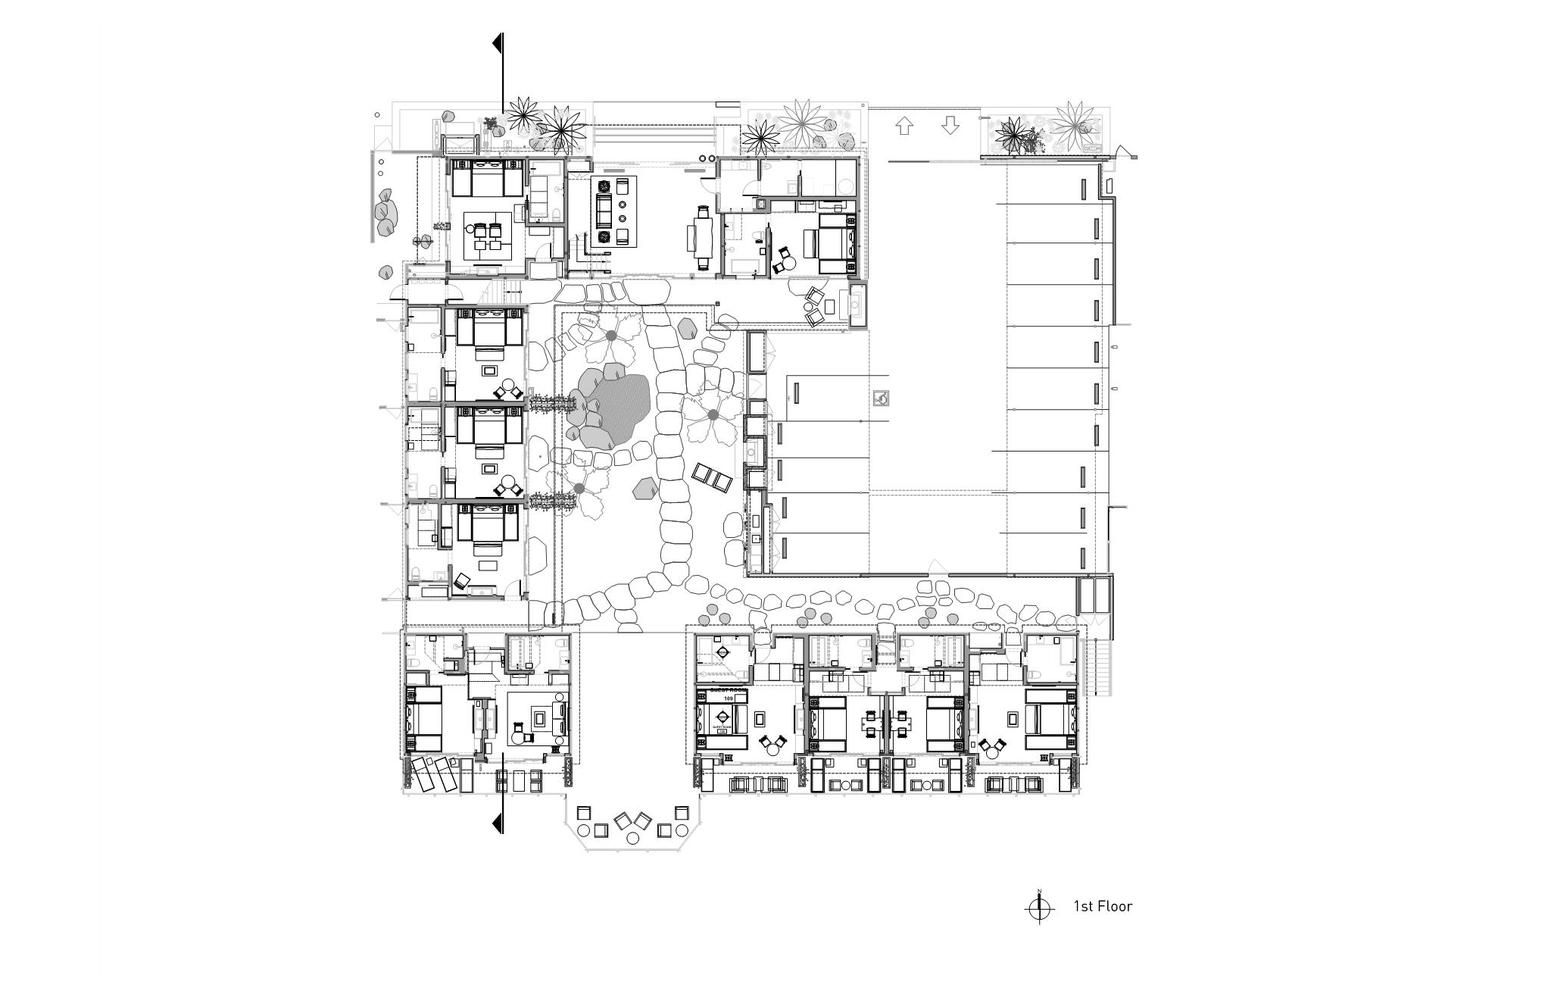 Gallery Of Nobu Ryokan Hotel Studio Pch Montalba Architects And Tal Studio 17 Ryokan Hotel Floor Floor Plans